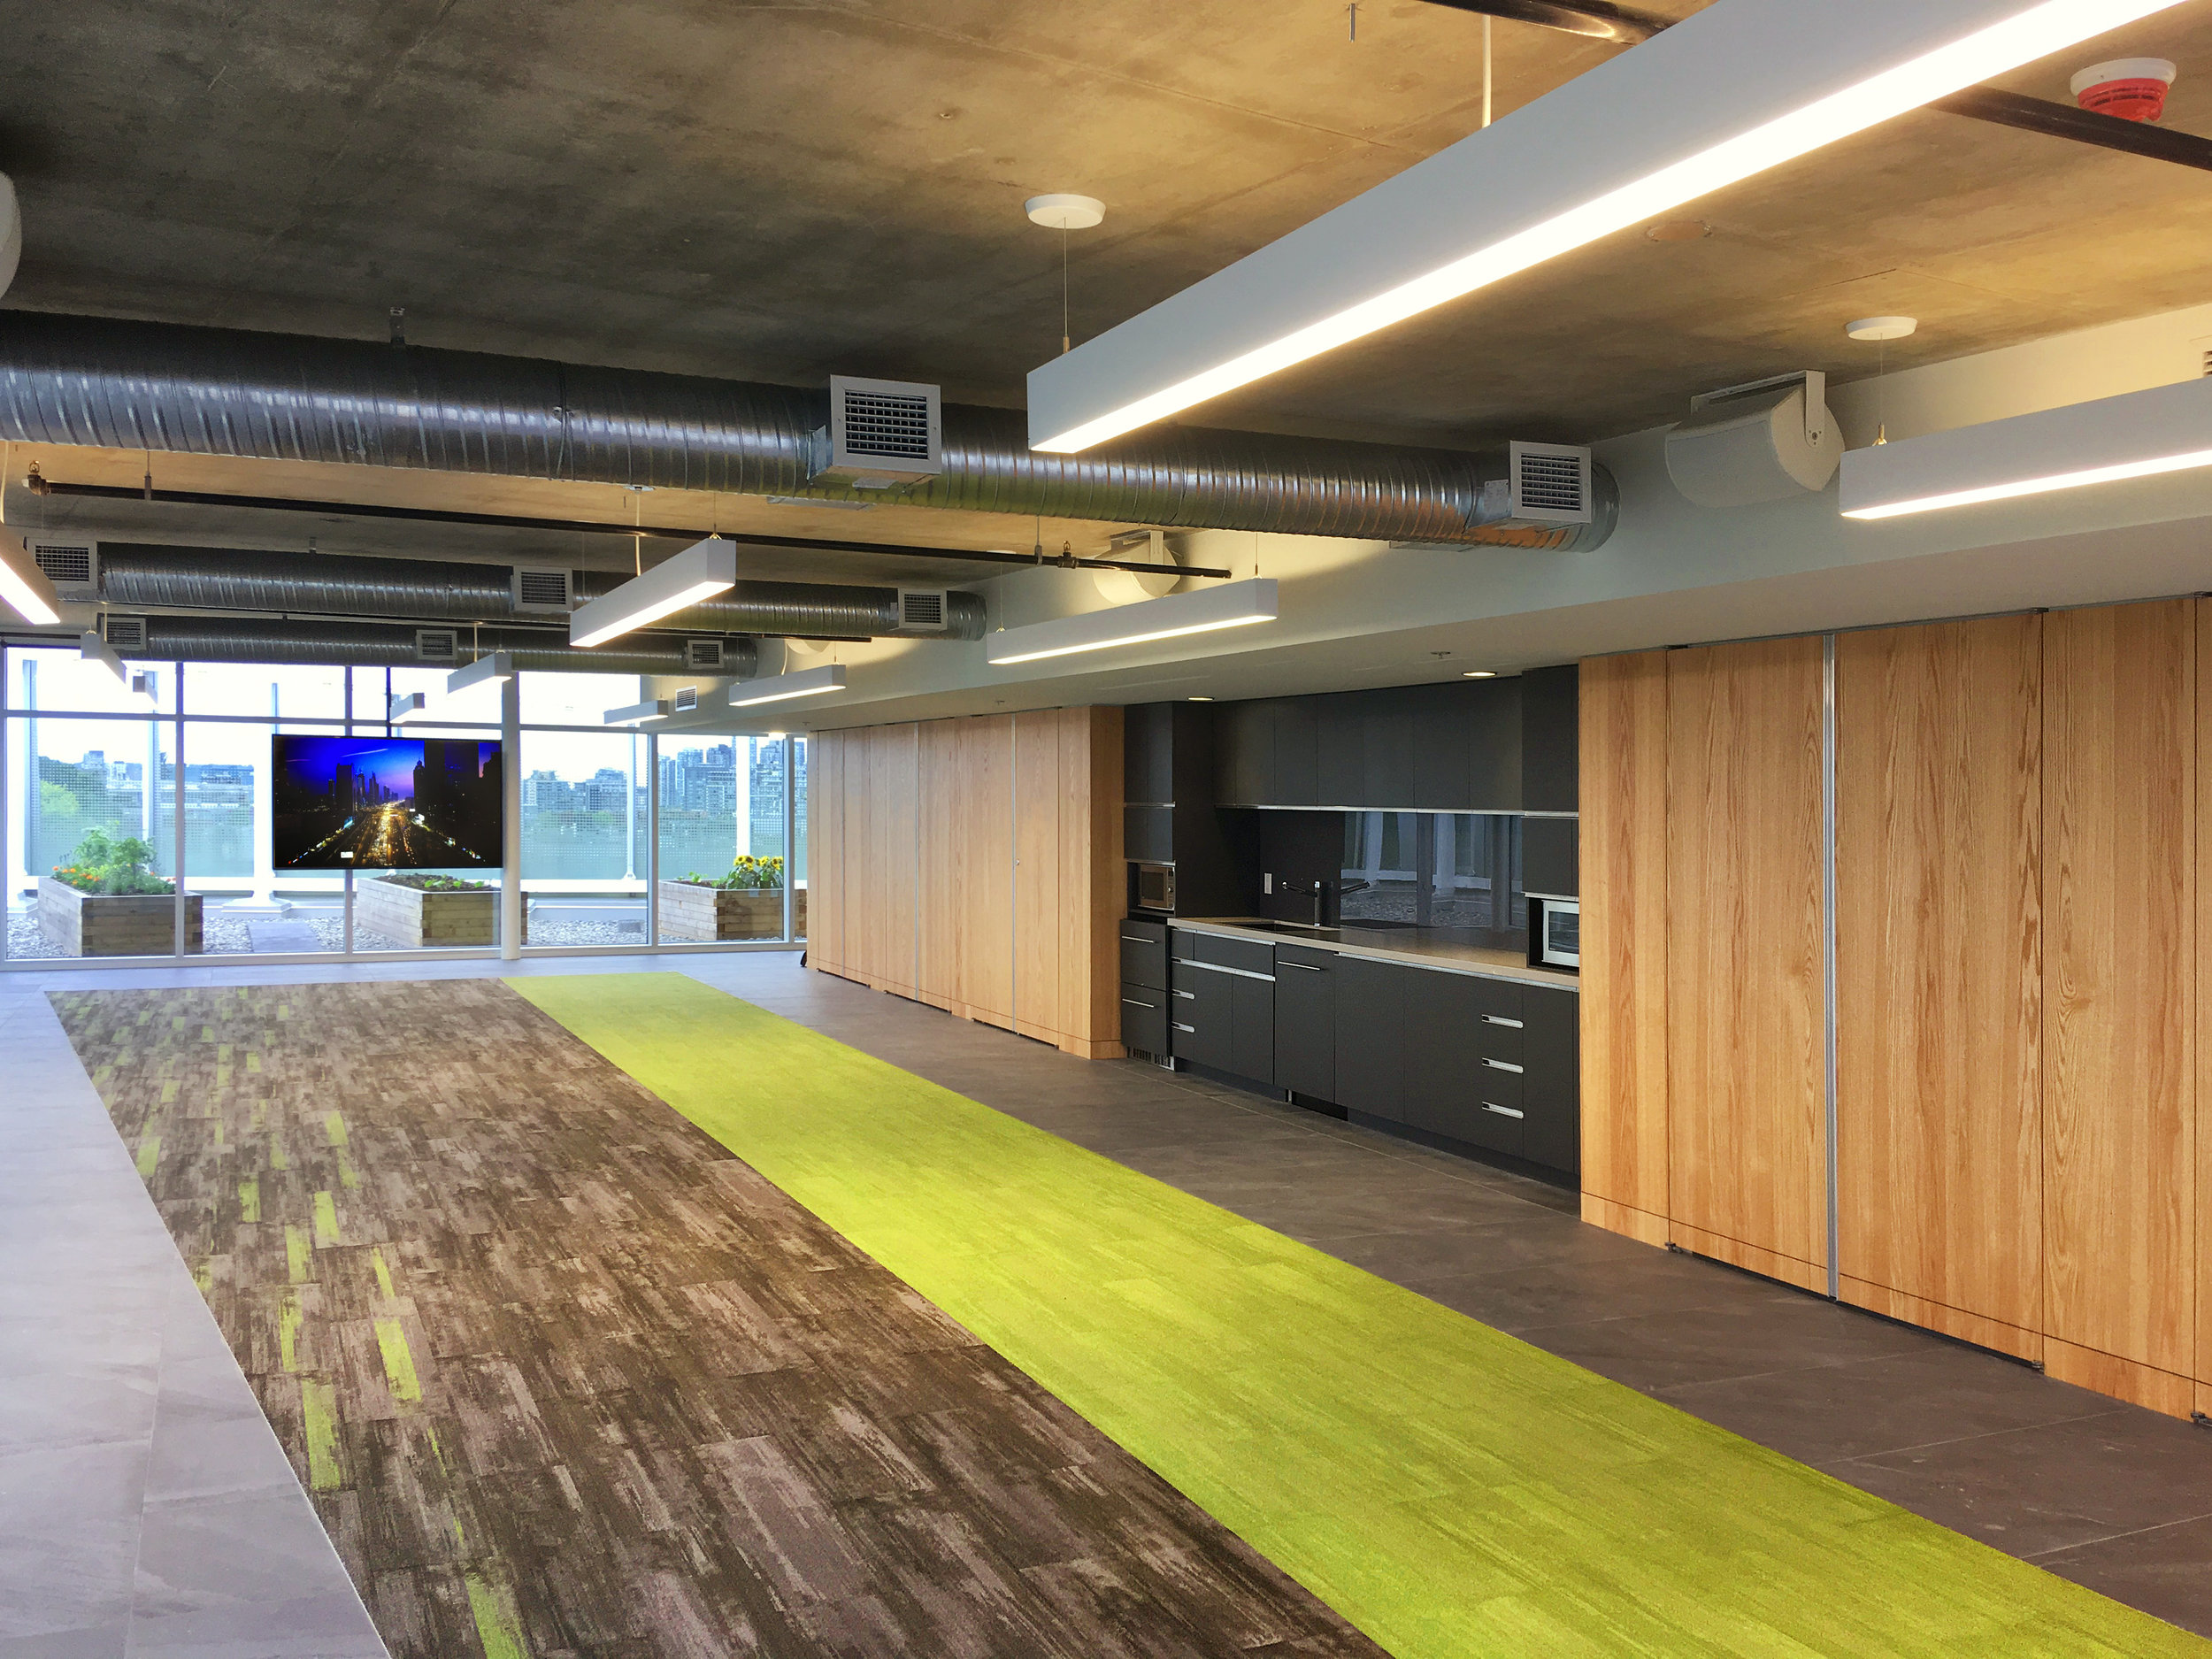 A beautiful jewel on the crown of a prominent commercial development in the heart of Vancouver, this rooftop assembly space has a self-serve, indoor/outdoor AV package.